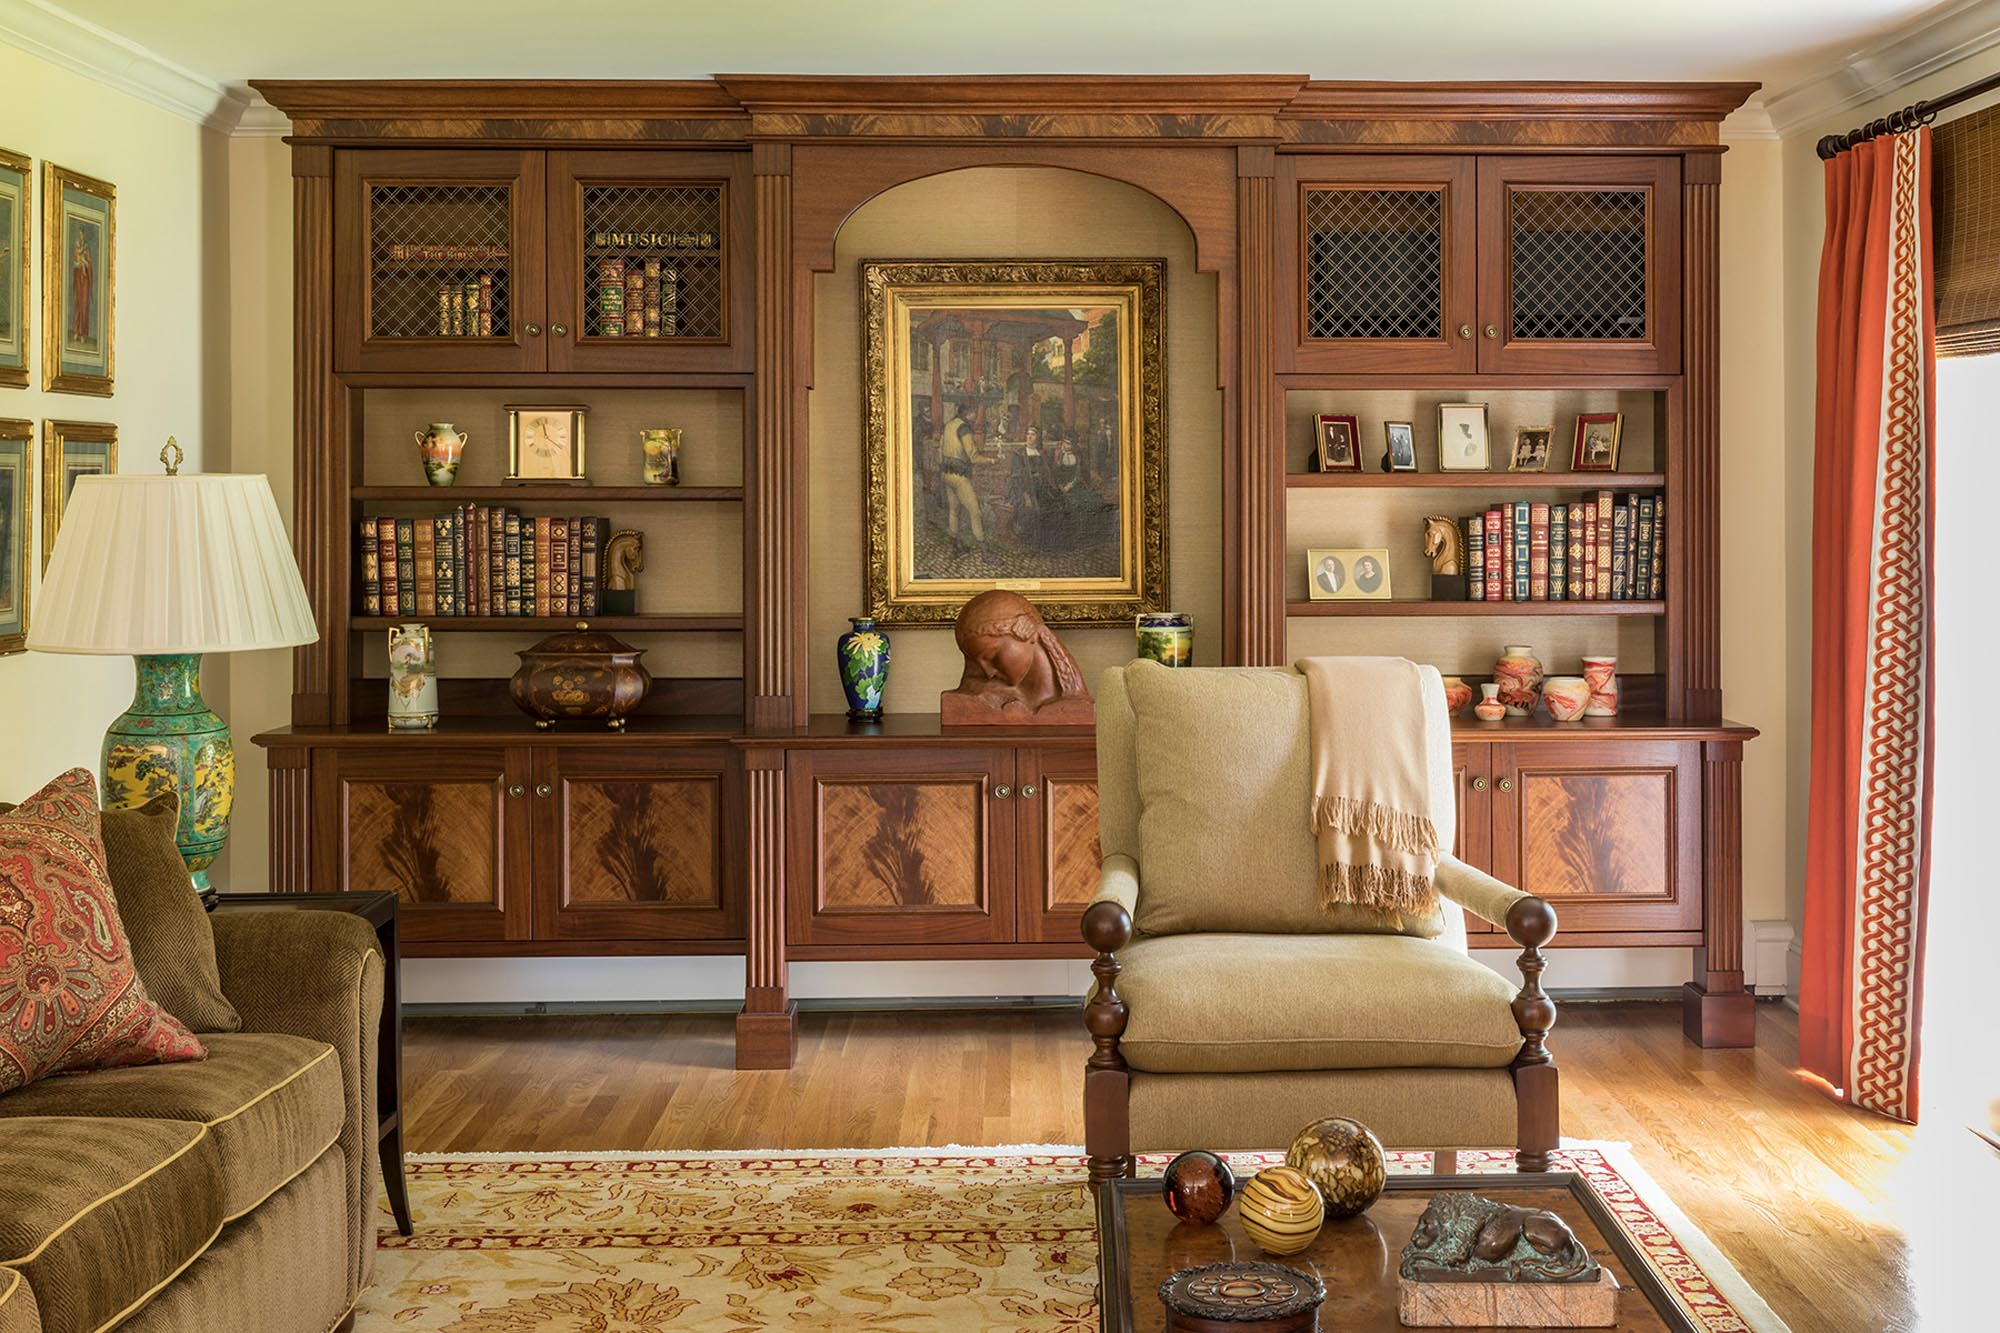 Spacious wooden cabinet with displays and chair